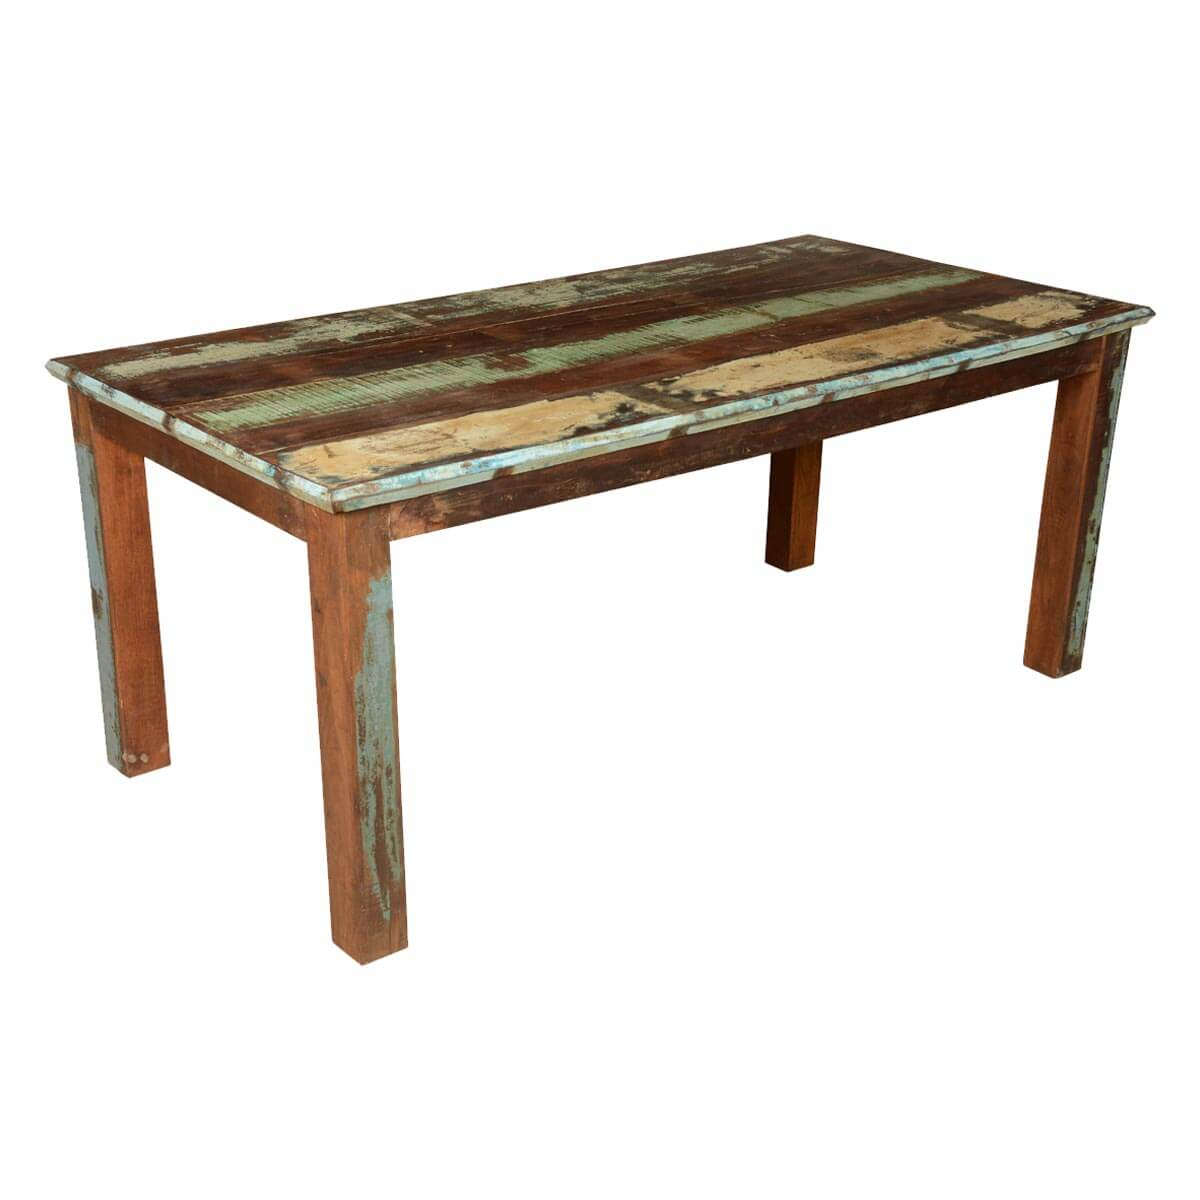 French Quarter Rustic Reclaimed Wood Striped Dining Table : 64132 from www.sierralivingconcepts.com size 1200 x 1200 jpeg 102kB